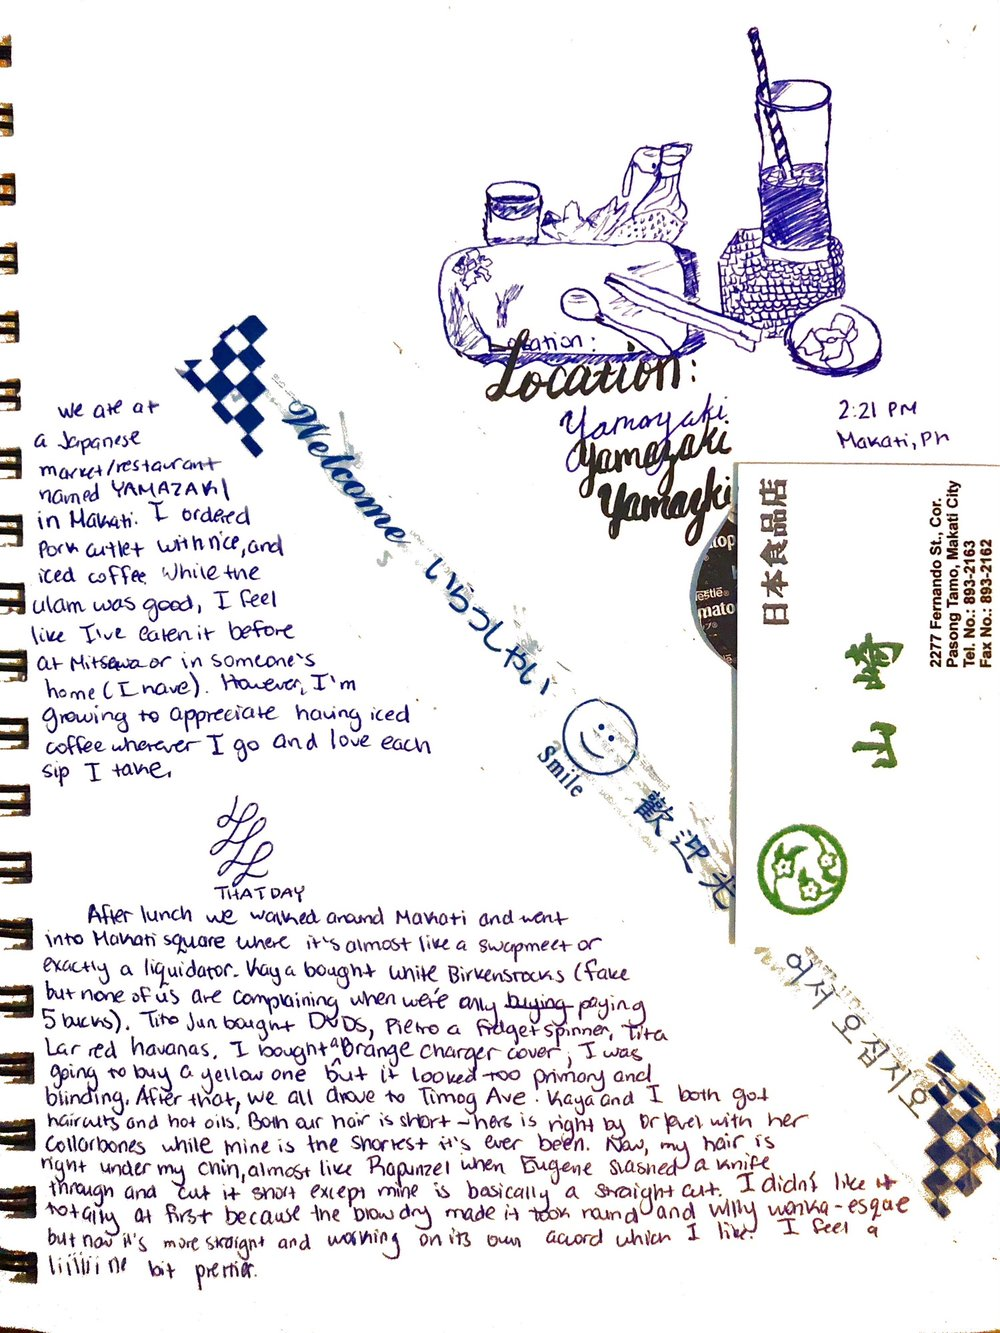 Journal Scans page 8.JPG